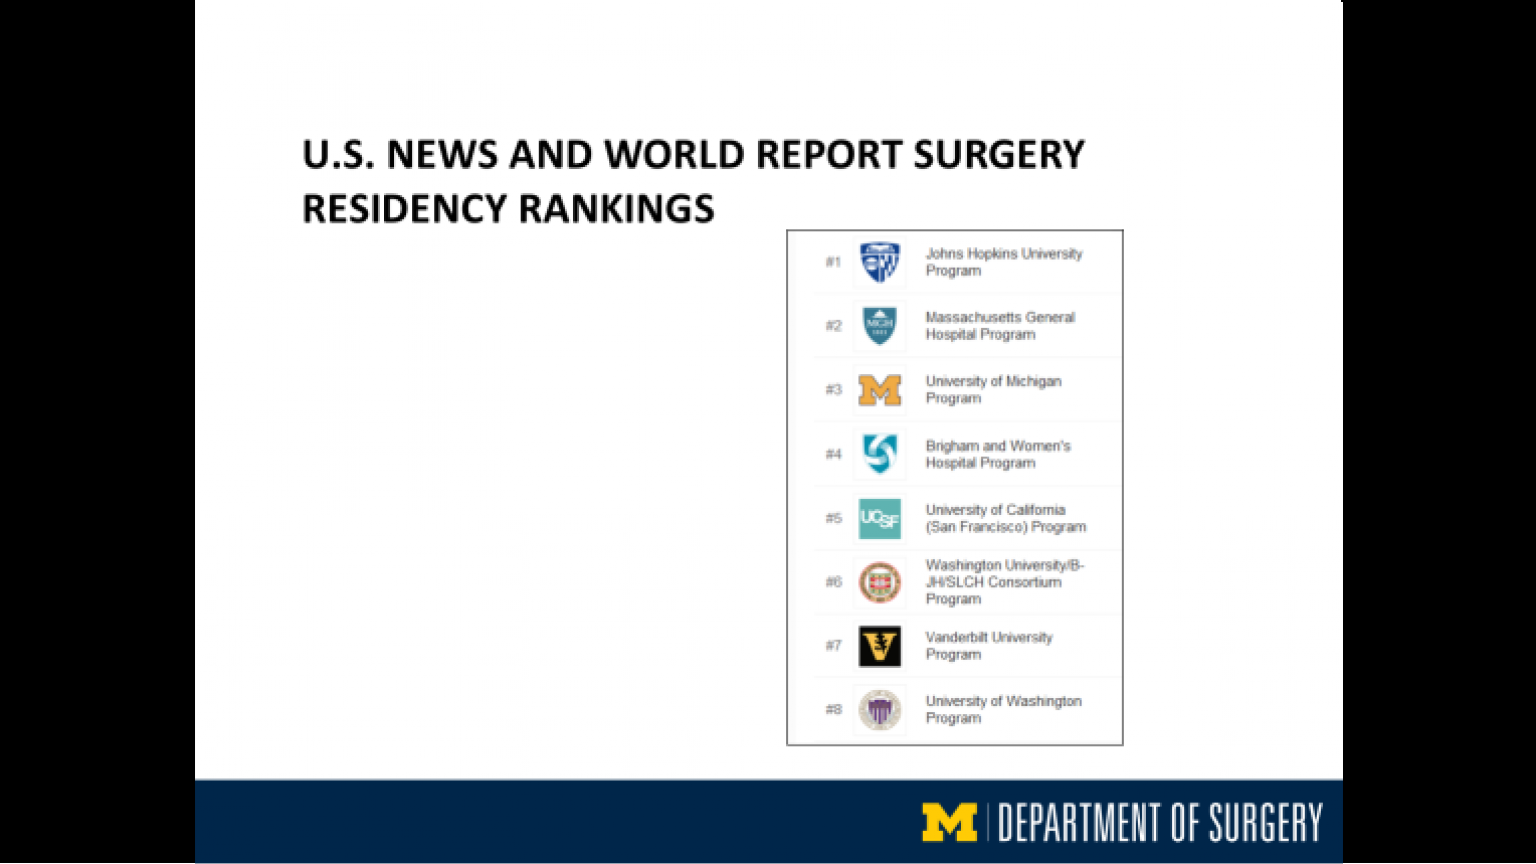 """U.S. News & World Report Surgery Residency Rankings - sixth slide of """"This Is What We Stand For"""" presentation"""